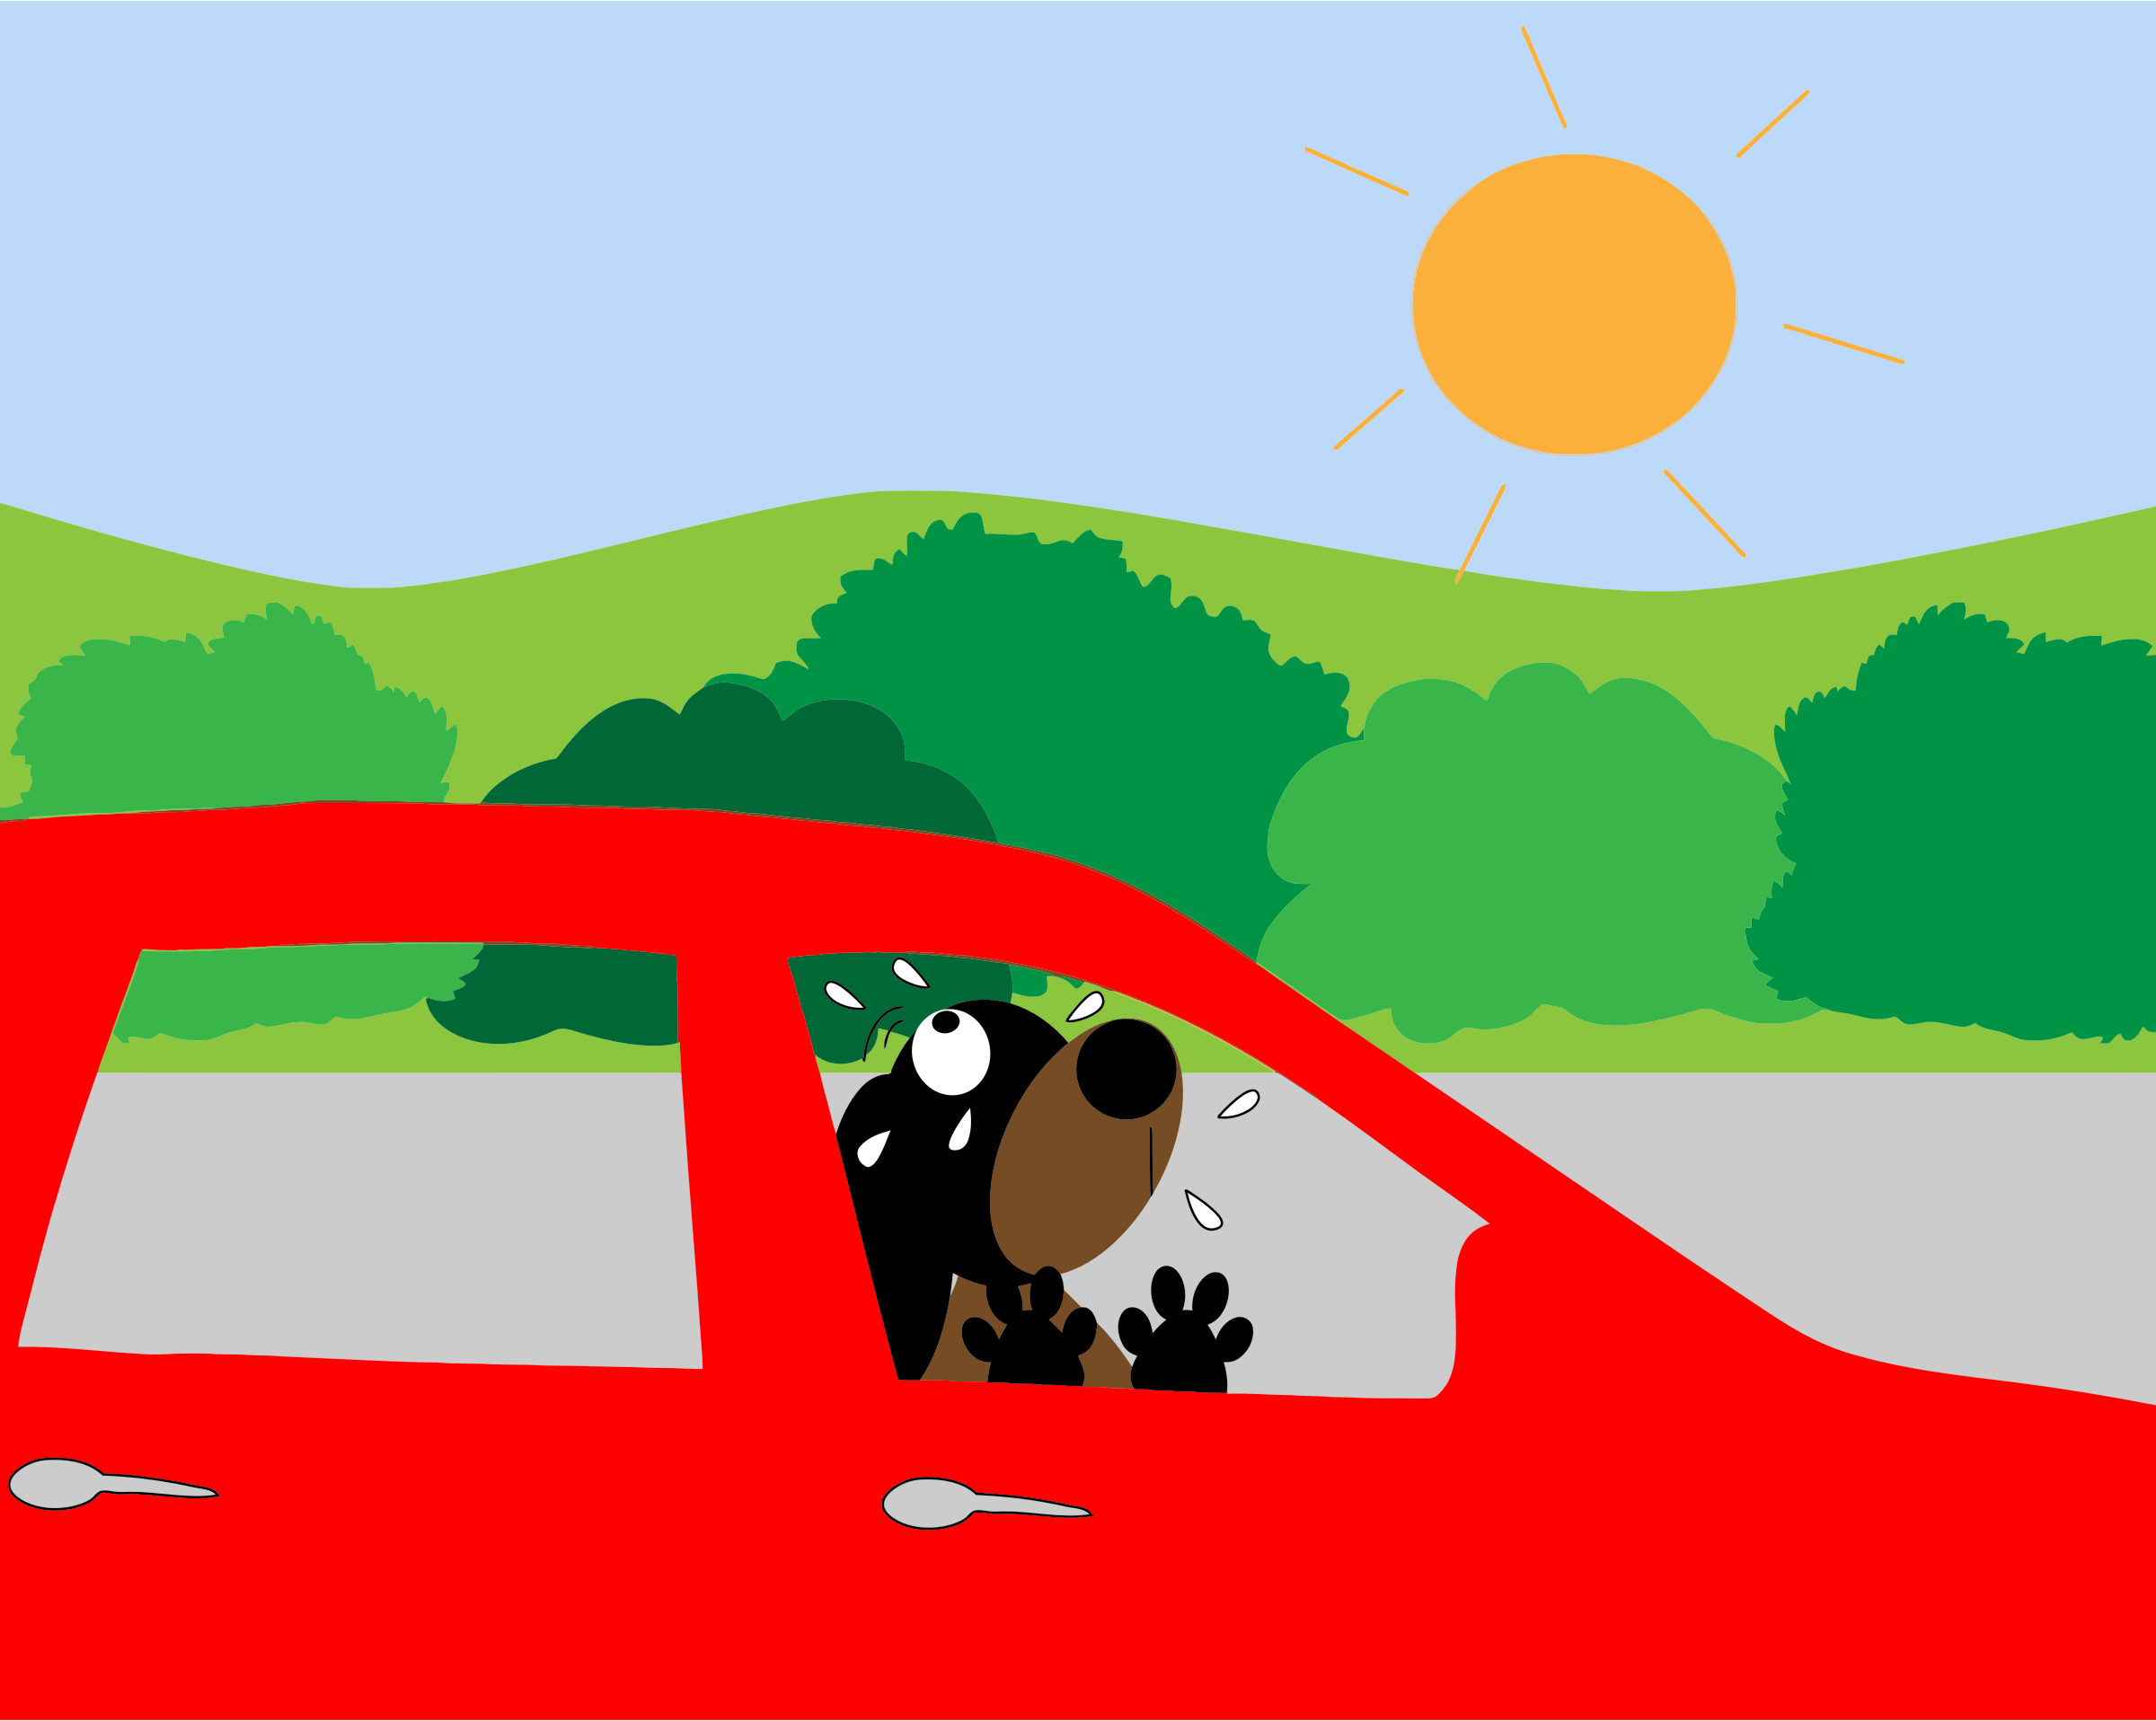 Dying clipart pet Trapped Dog Sweltering Trapped In